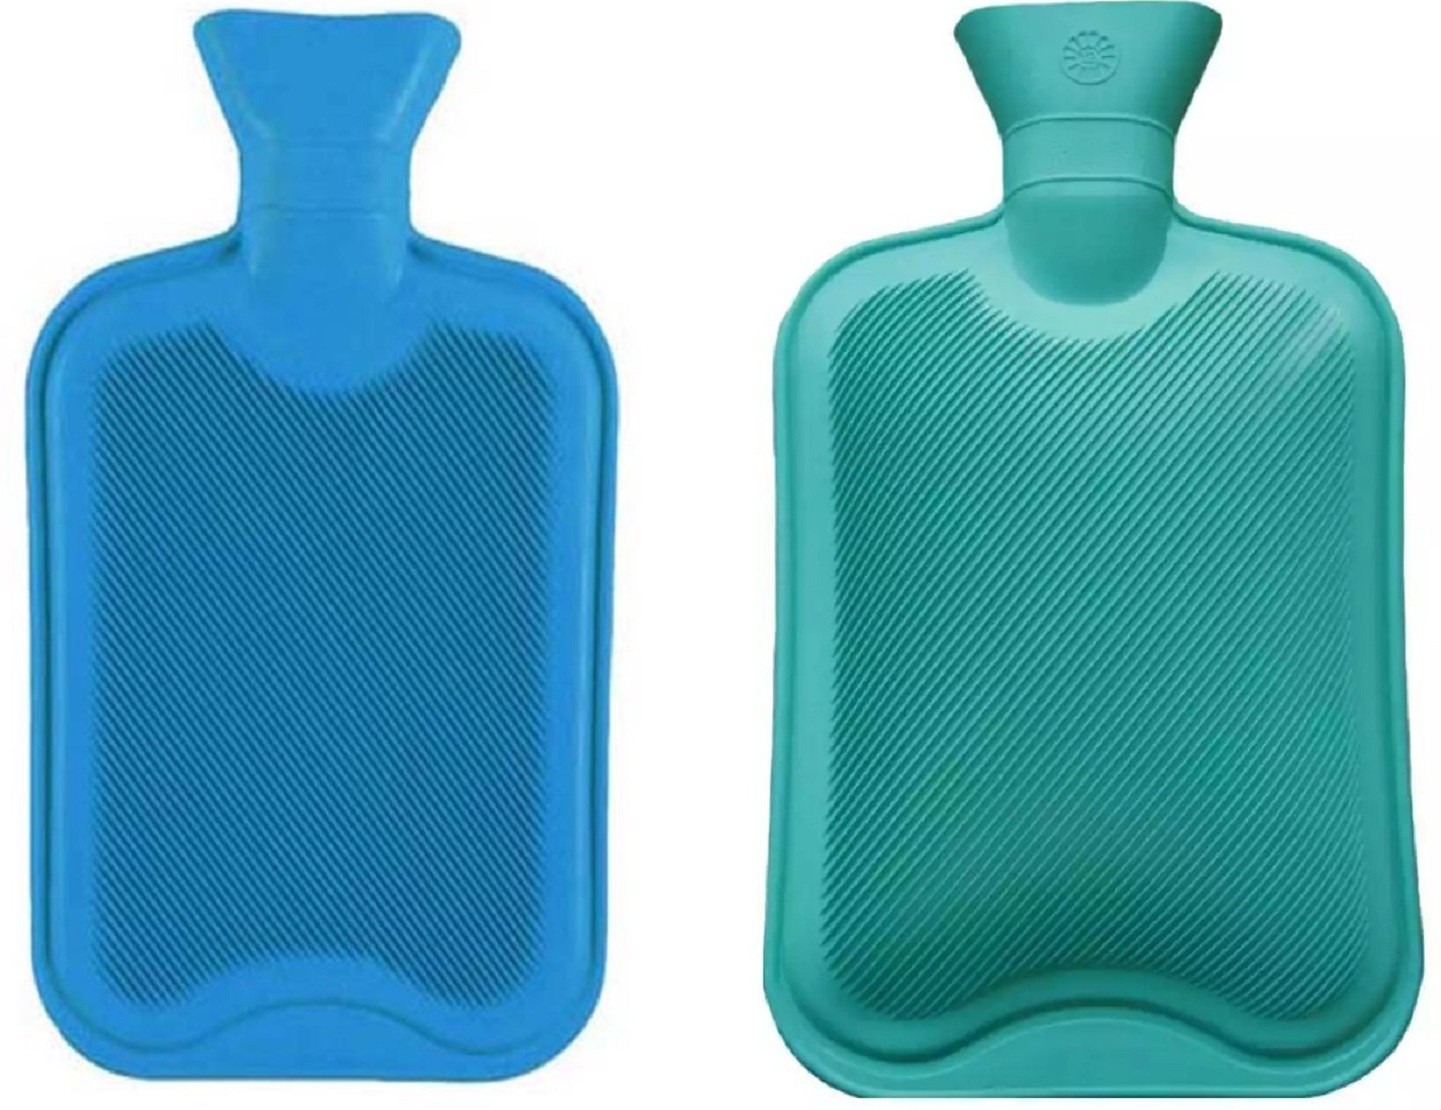 Toolyard Comfort Pain Combo Non-electrical 3 L Hot Water Bag(Blue, Green)